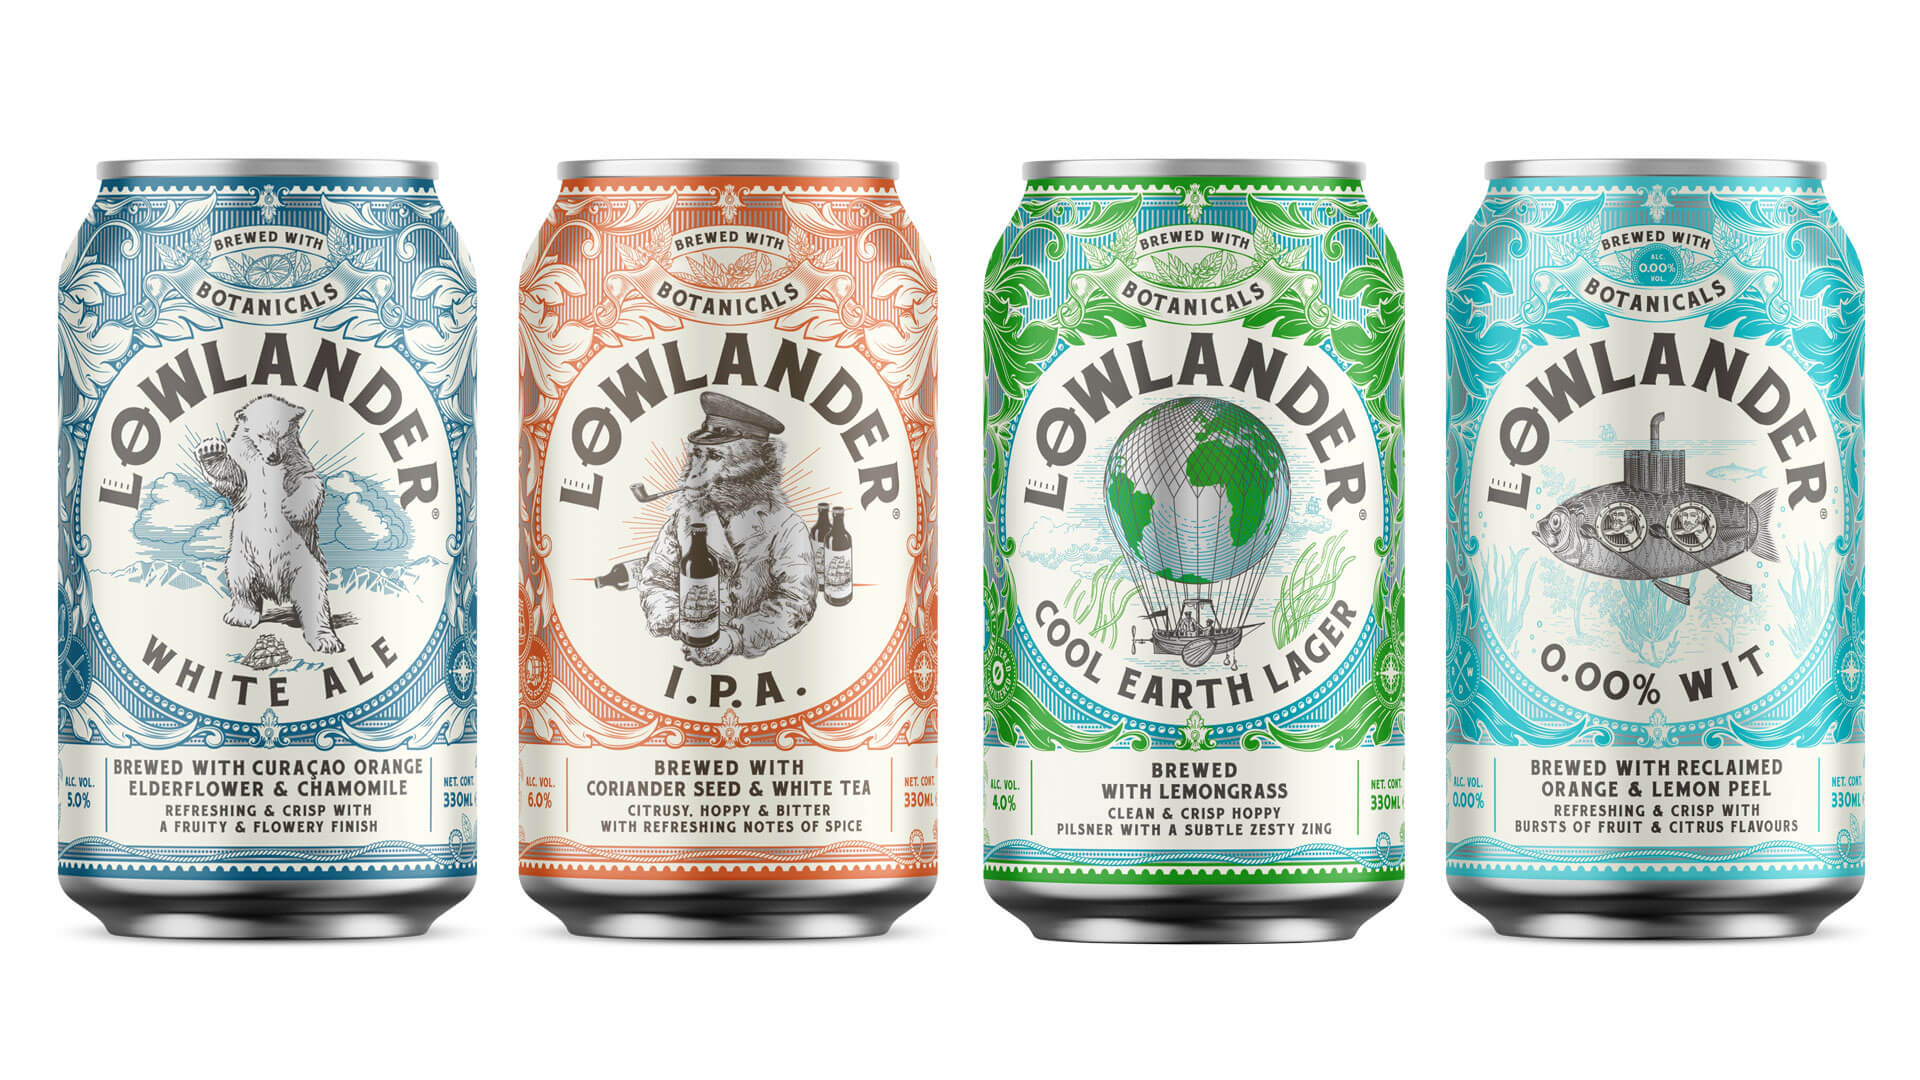 Lowlander Beer can design by Mutiny Agency